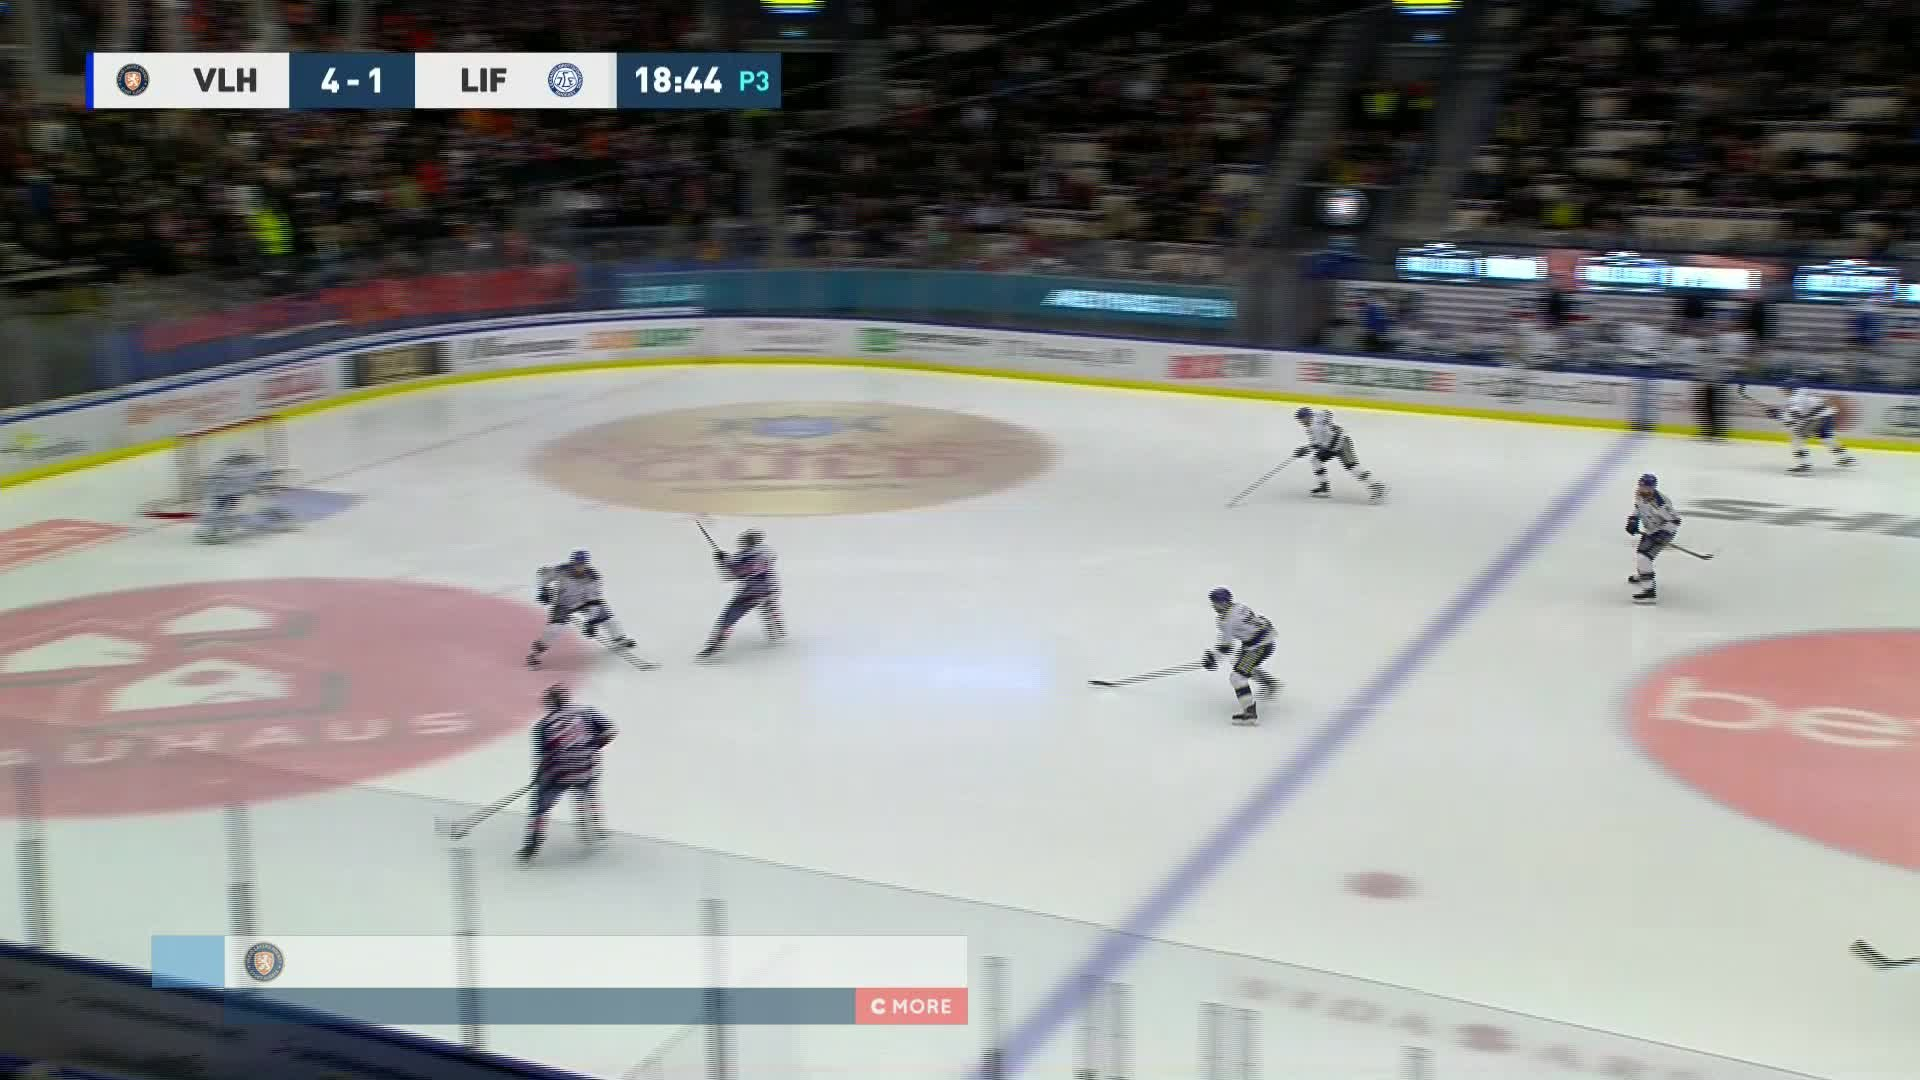 Växjö Lakers - Leksands IF 5-1